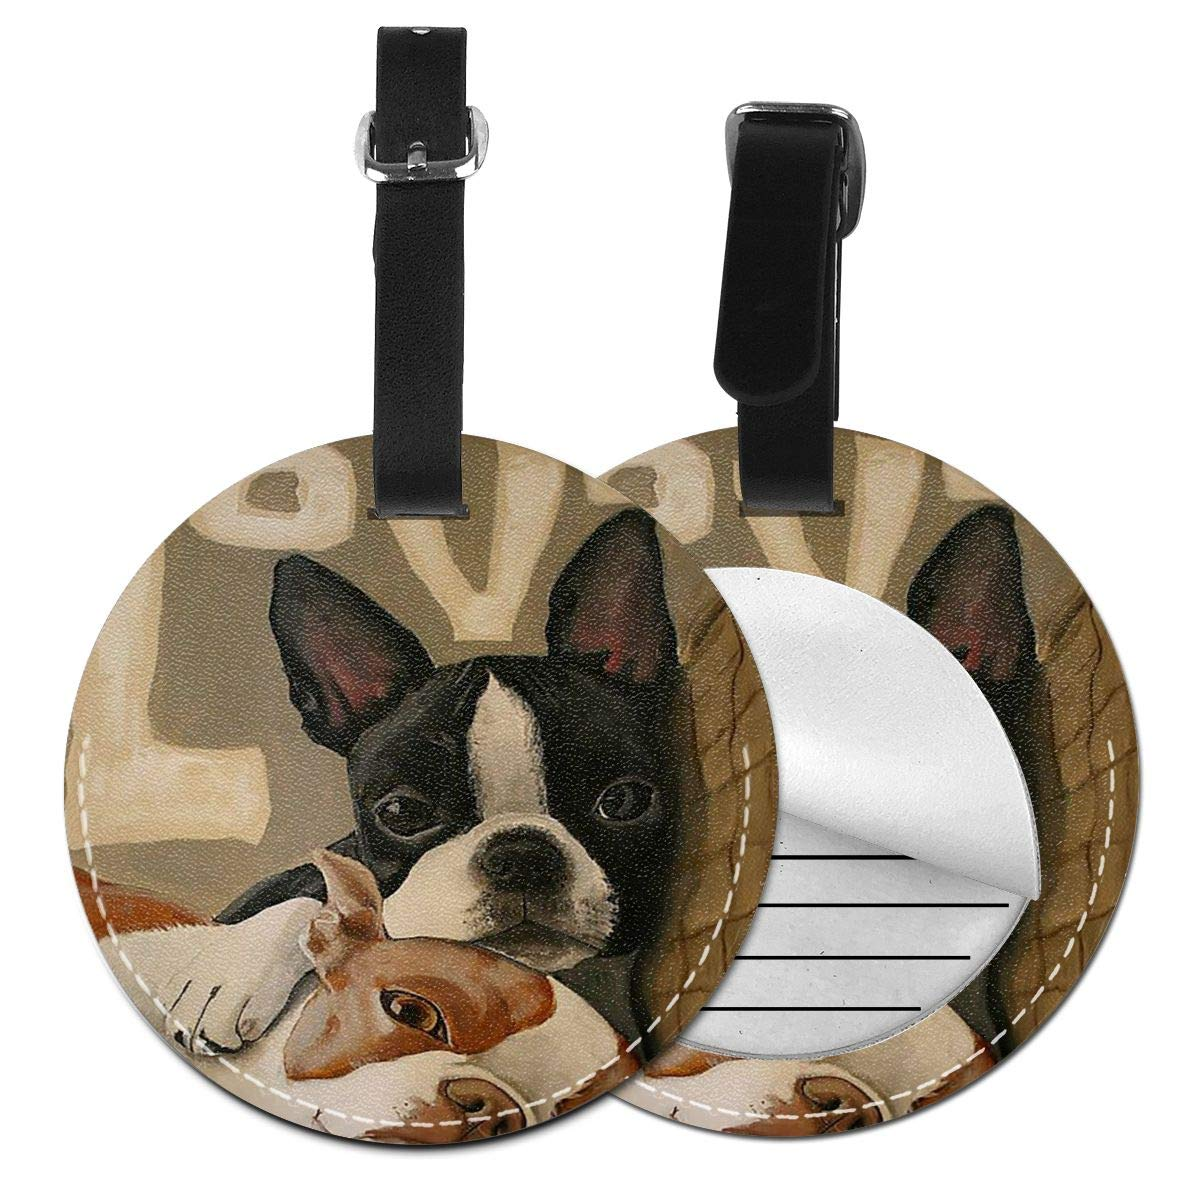 Boston Terrier Jinsshop 4 PCS Leather Luggage Tag With Name ID Card Perfect To Quickly Spot Luggage Suitcase